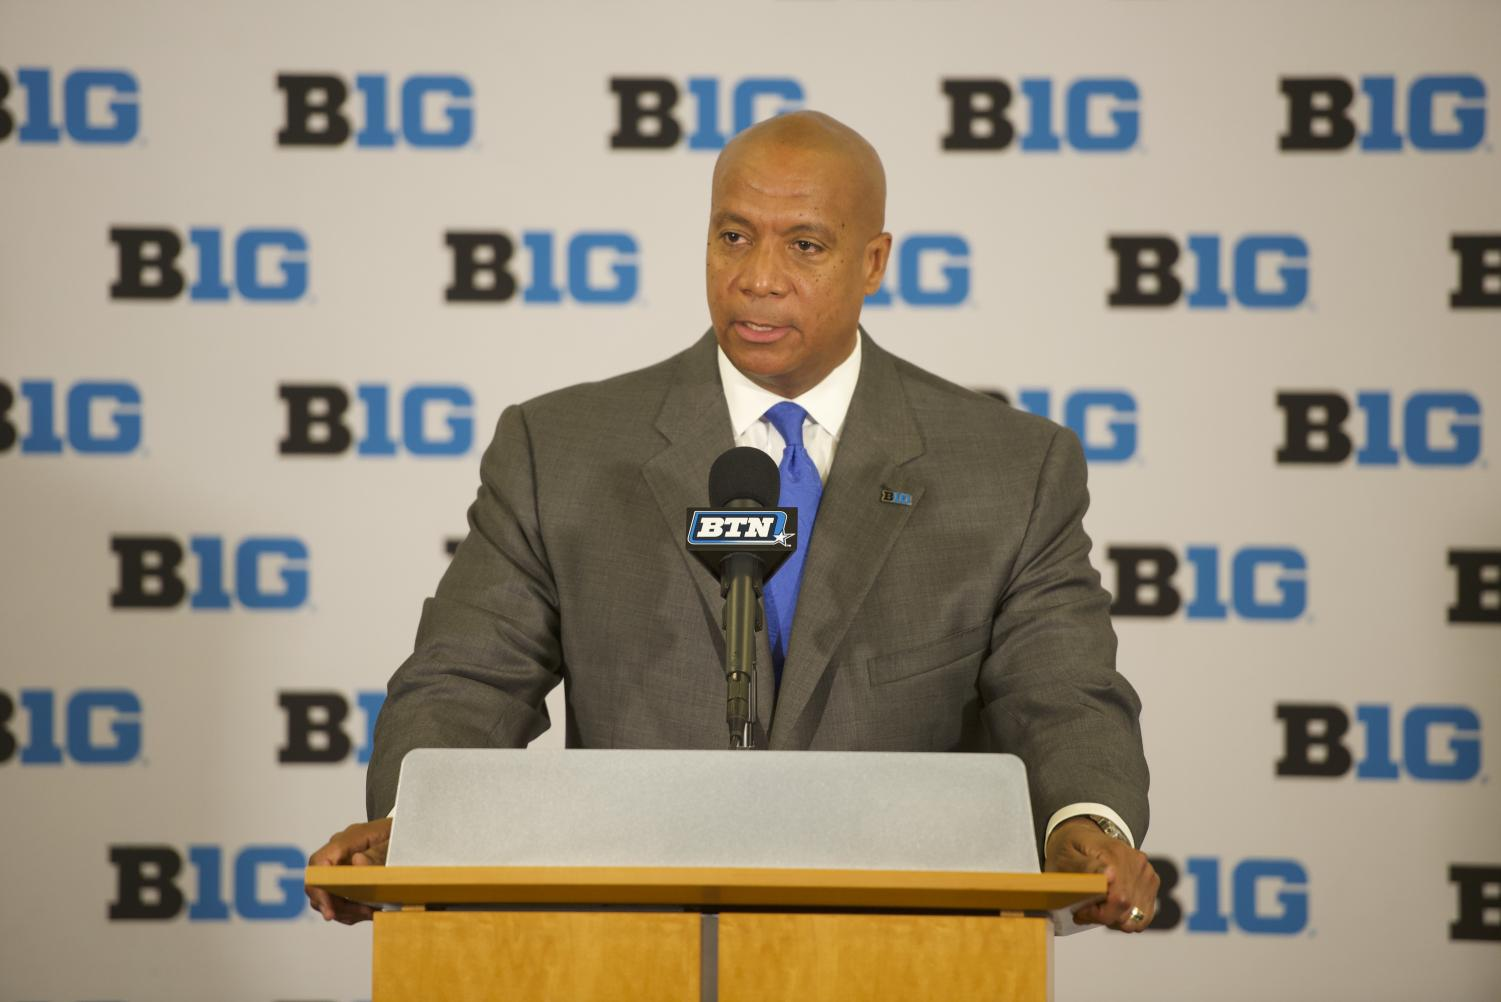 Kevin Warren speaks at a press conference Tuesday. The Minnesota Vikings COO was named the sixth commissioner in the history of the Big Ten.